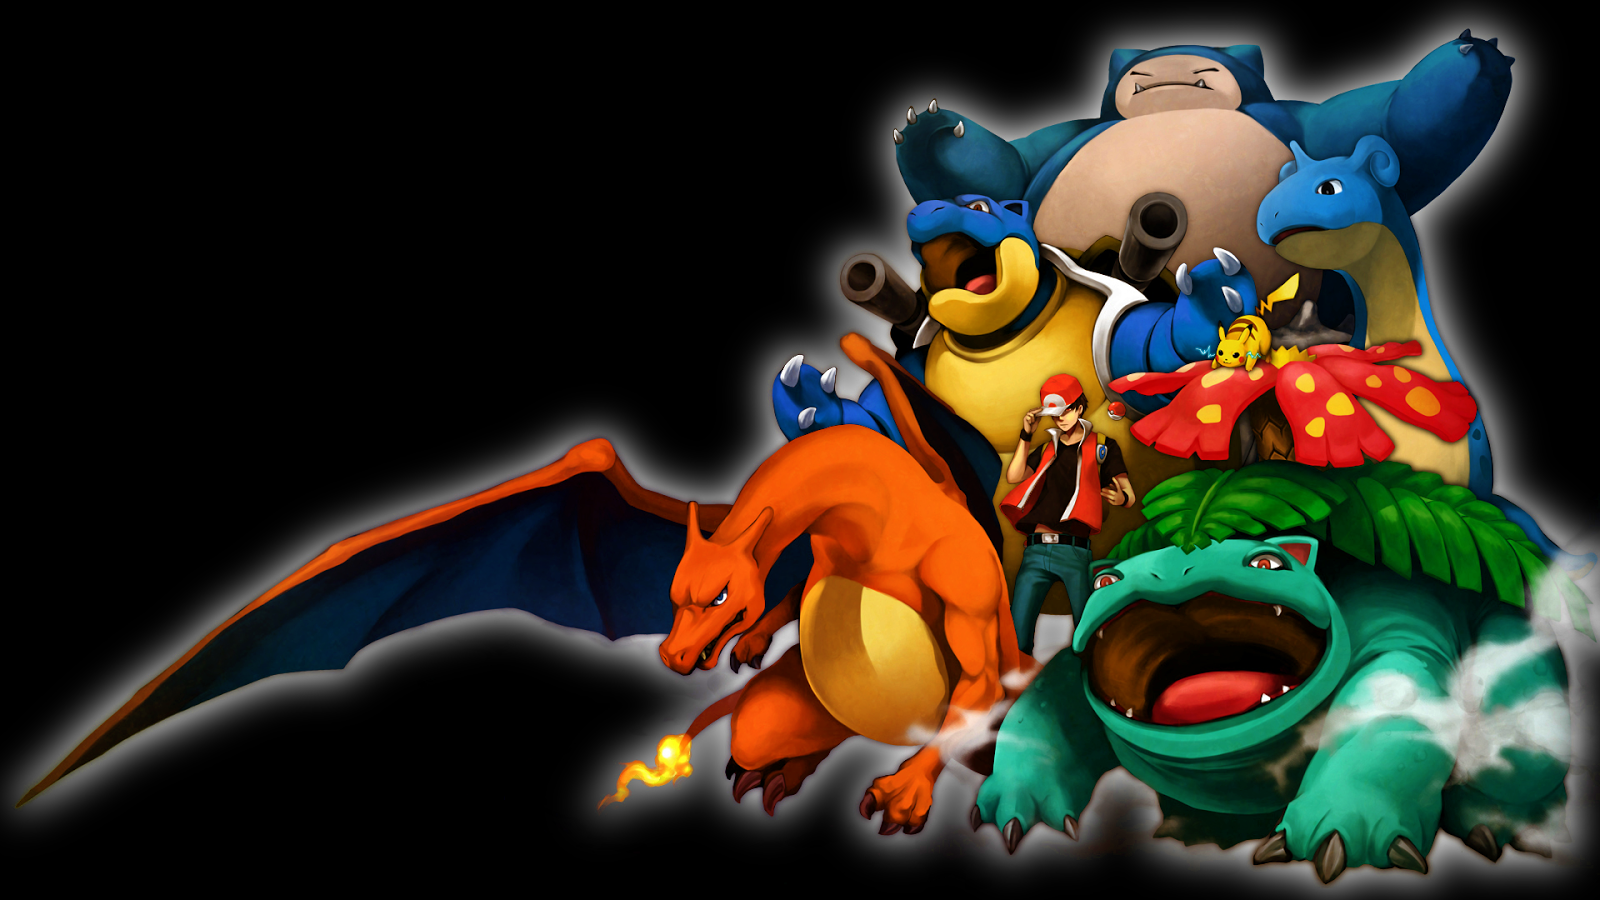 POKEMON MONSTERS HD WALLPAPER Gambar Kartun Lucu Dan Wallpaper